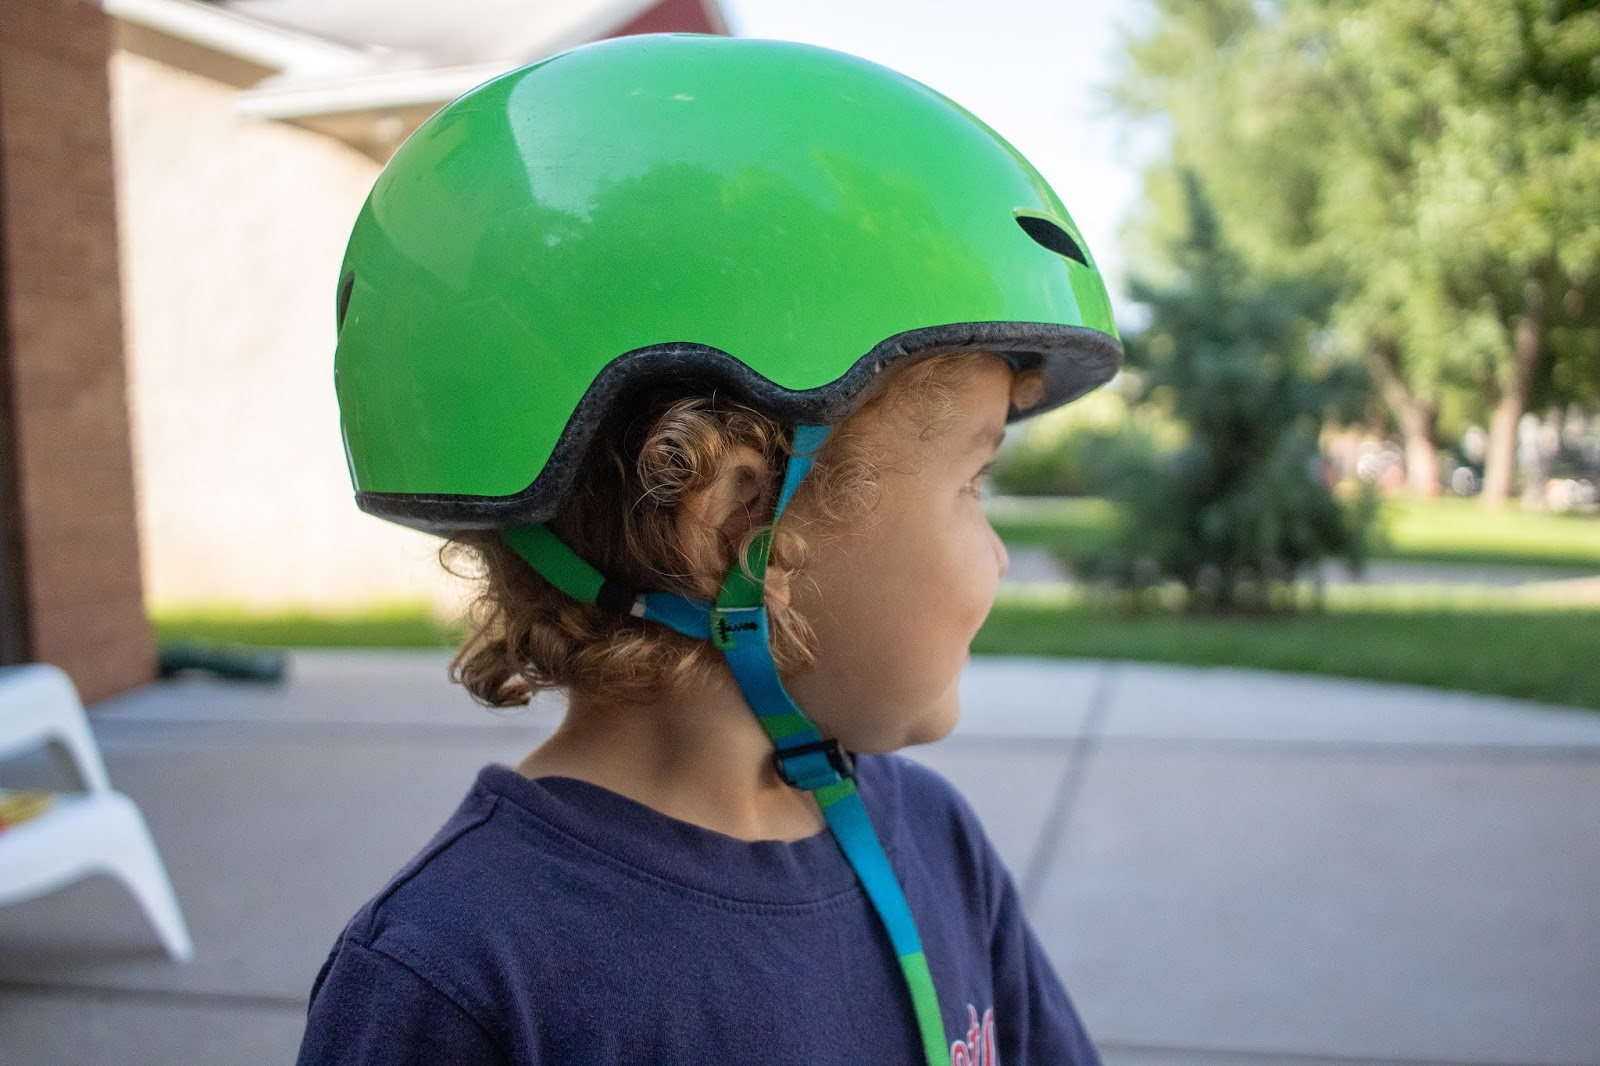 A look at a Montessori friendly toddler helmet that promotes both accessibility and independence